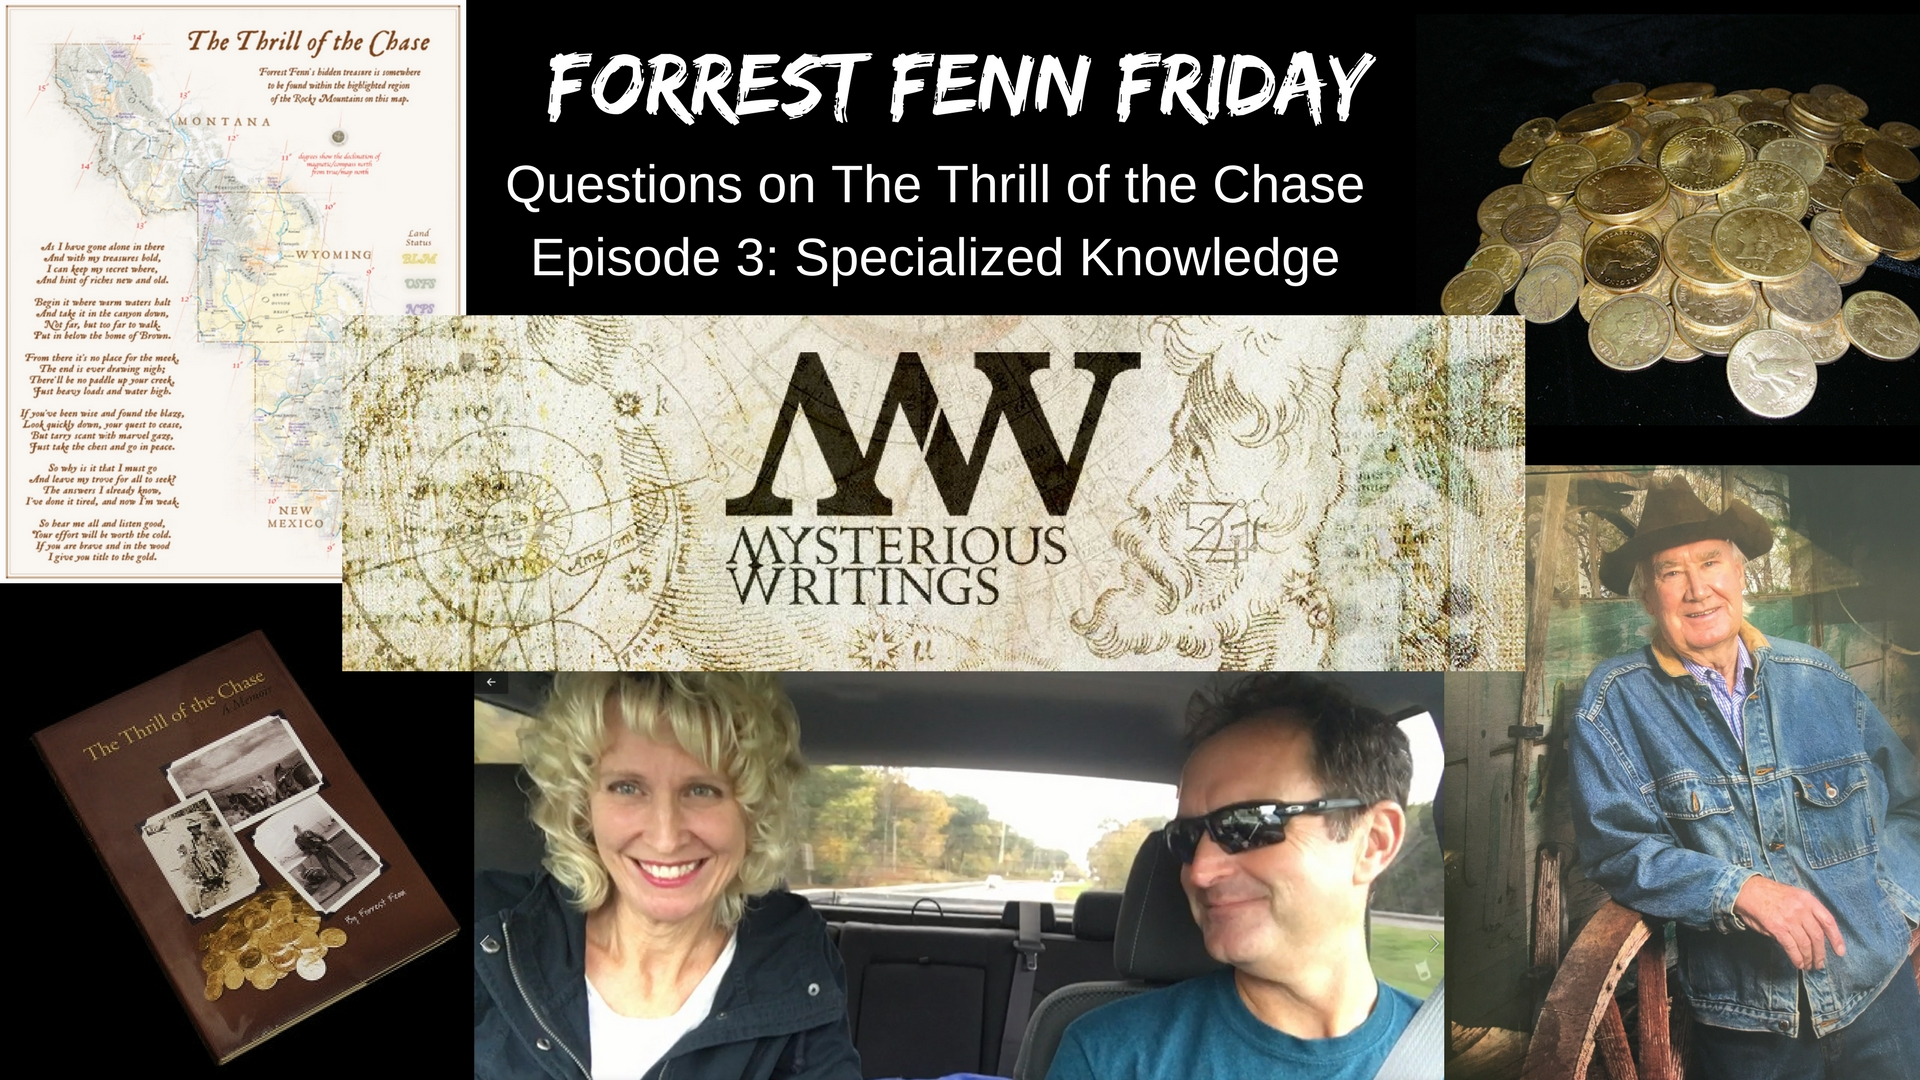 Forrest Fenn Friday Questions On The Thrill Of The Chase